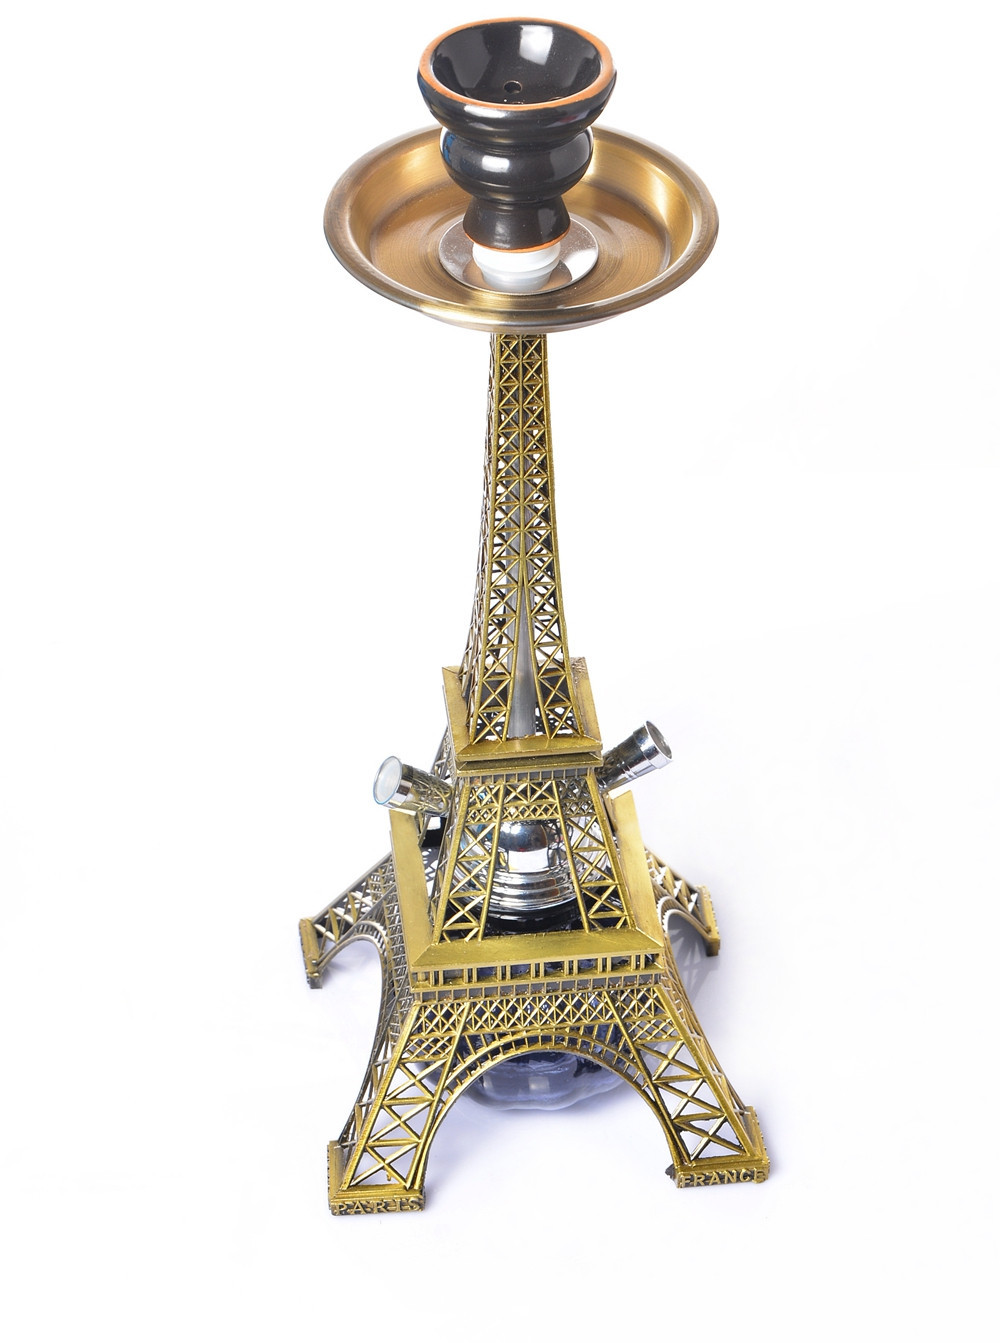 Eiffel Tower Hookah Double Pipe Hookah Set  Dry  Smoking Accessories for Weed Cute for Girls  Bowls   Bong 4